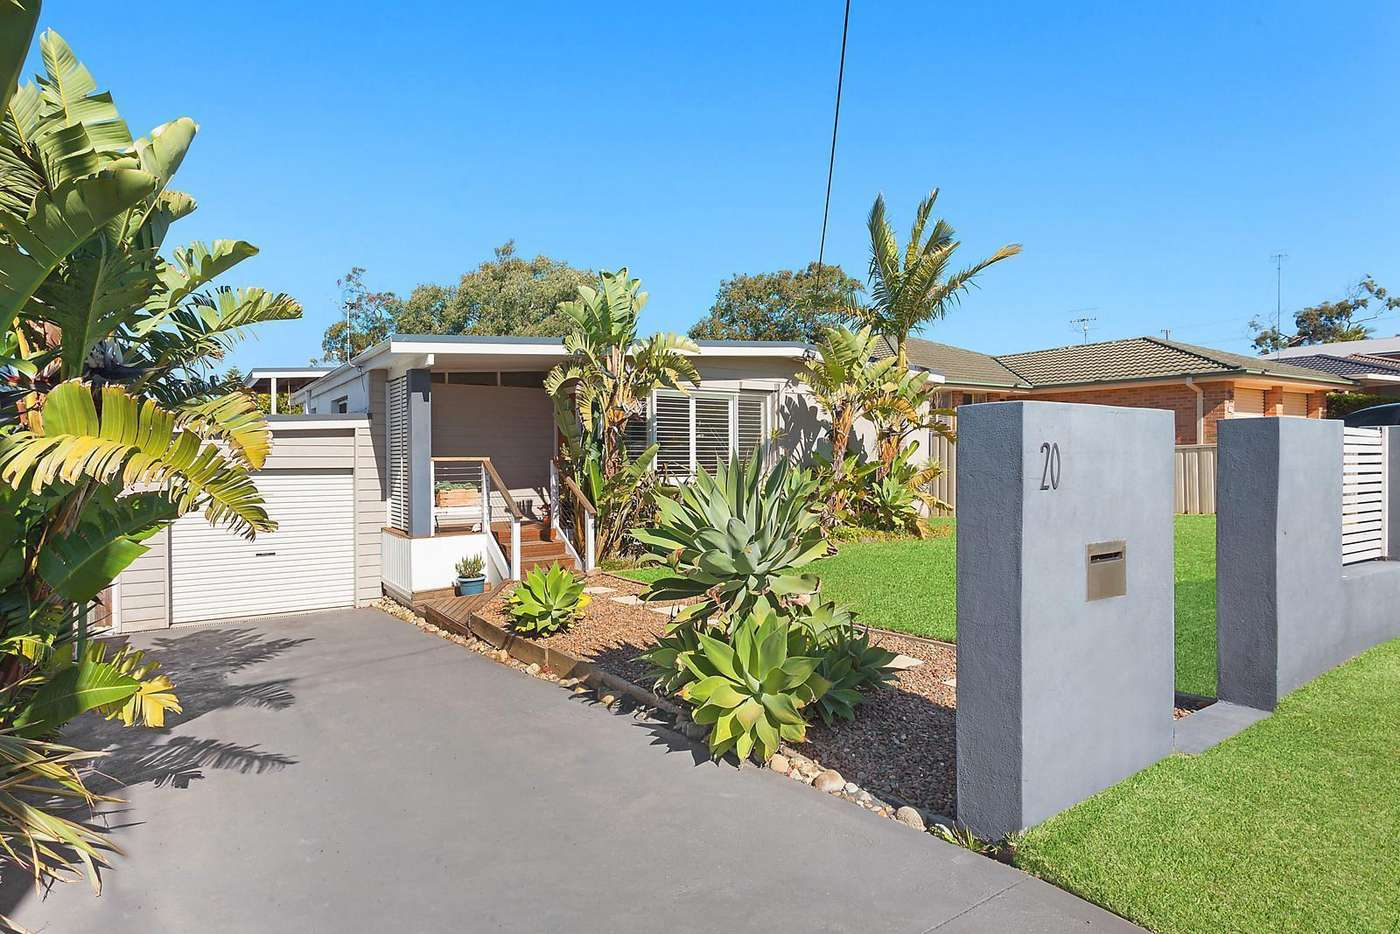 Main view of Homely house listing, 20 Promenade Avenue, Bateau Bay NSW 2261